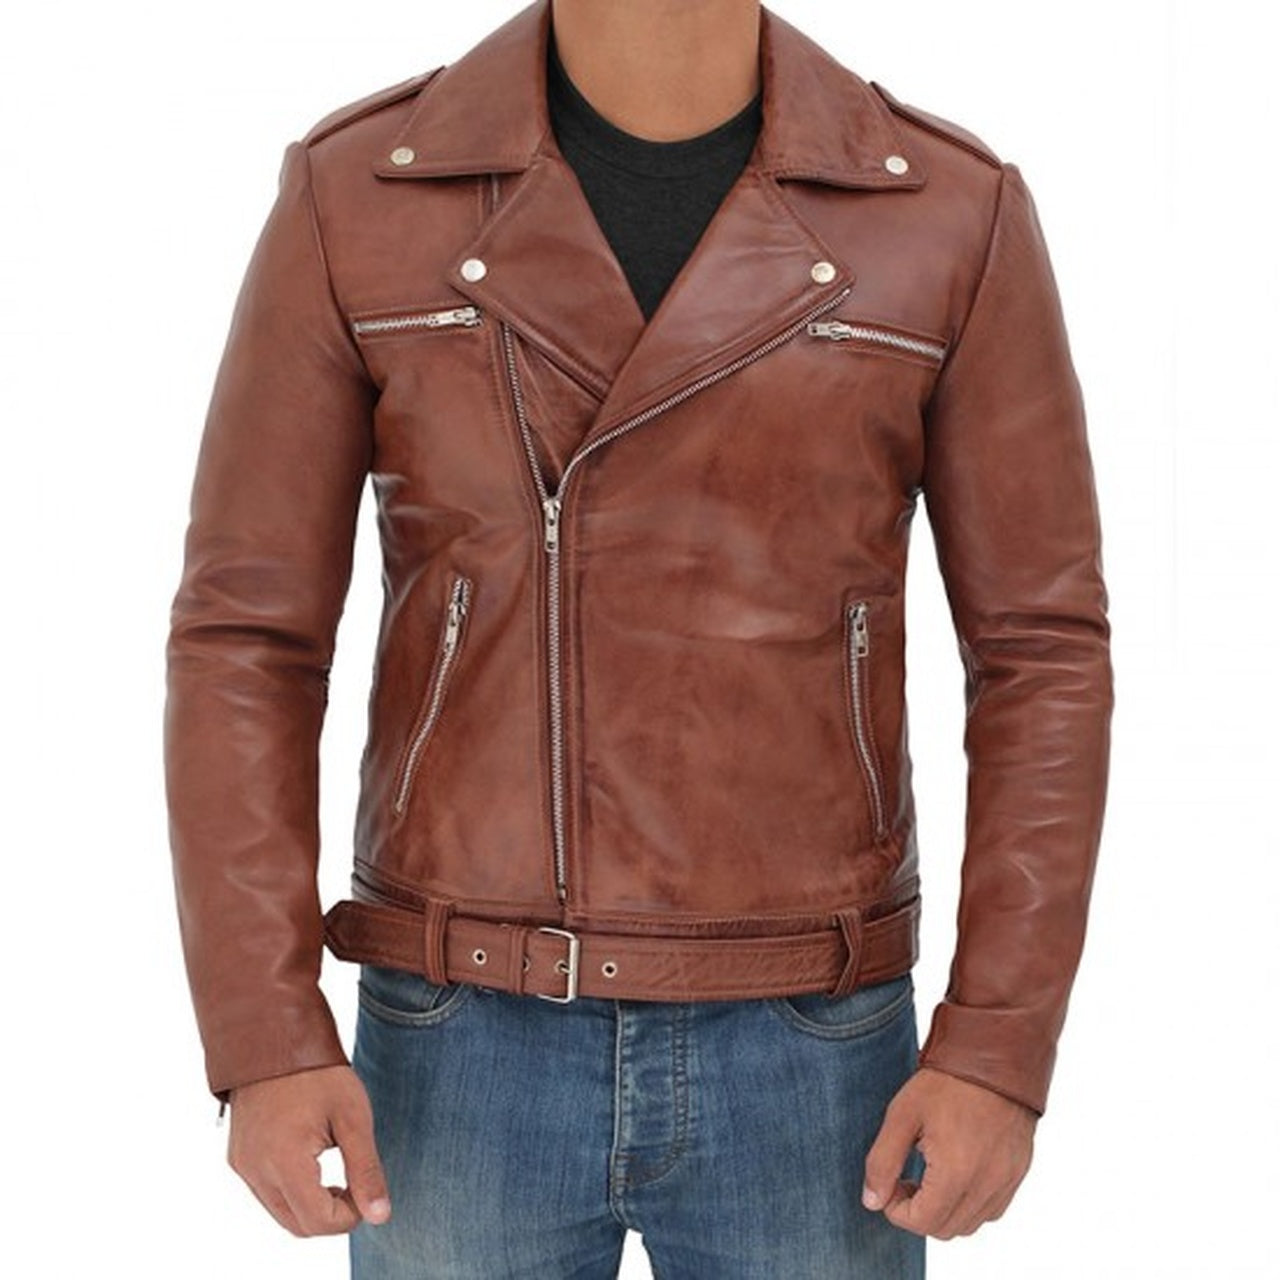 Brown Leather Motorcycle Jacket for Men - Leather Jacket